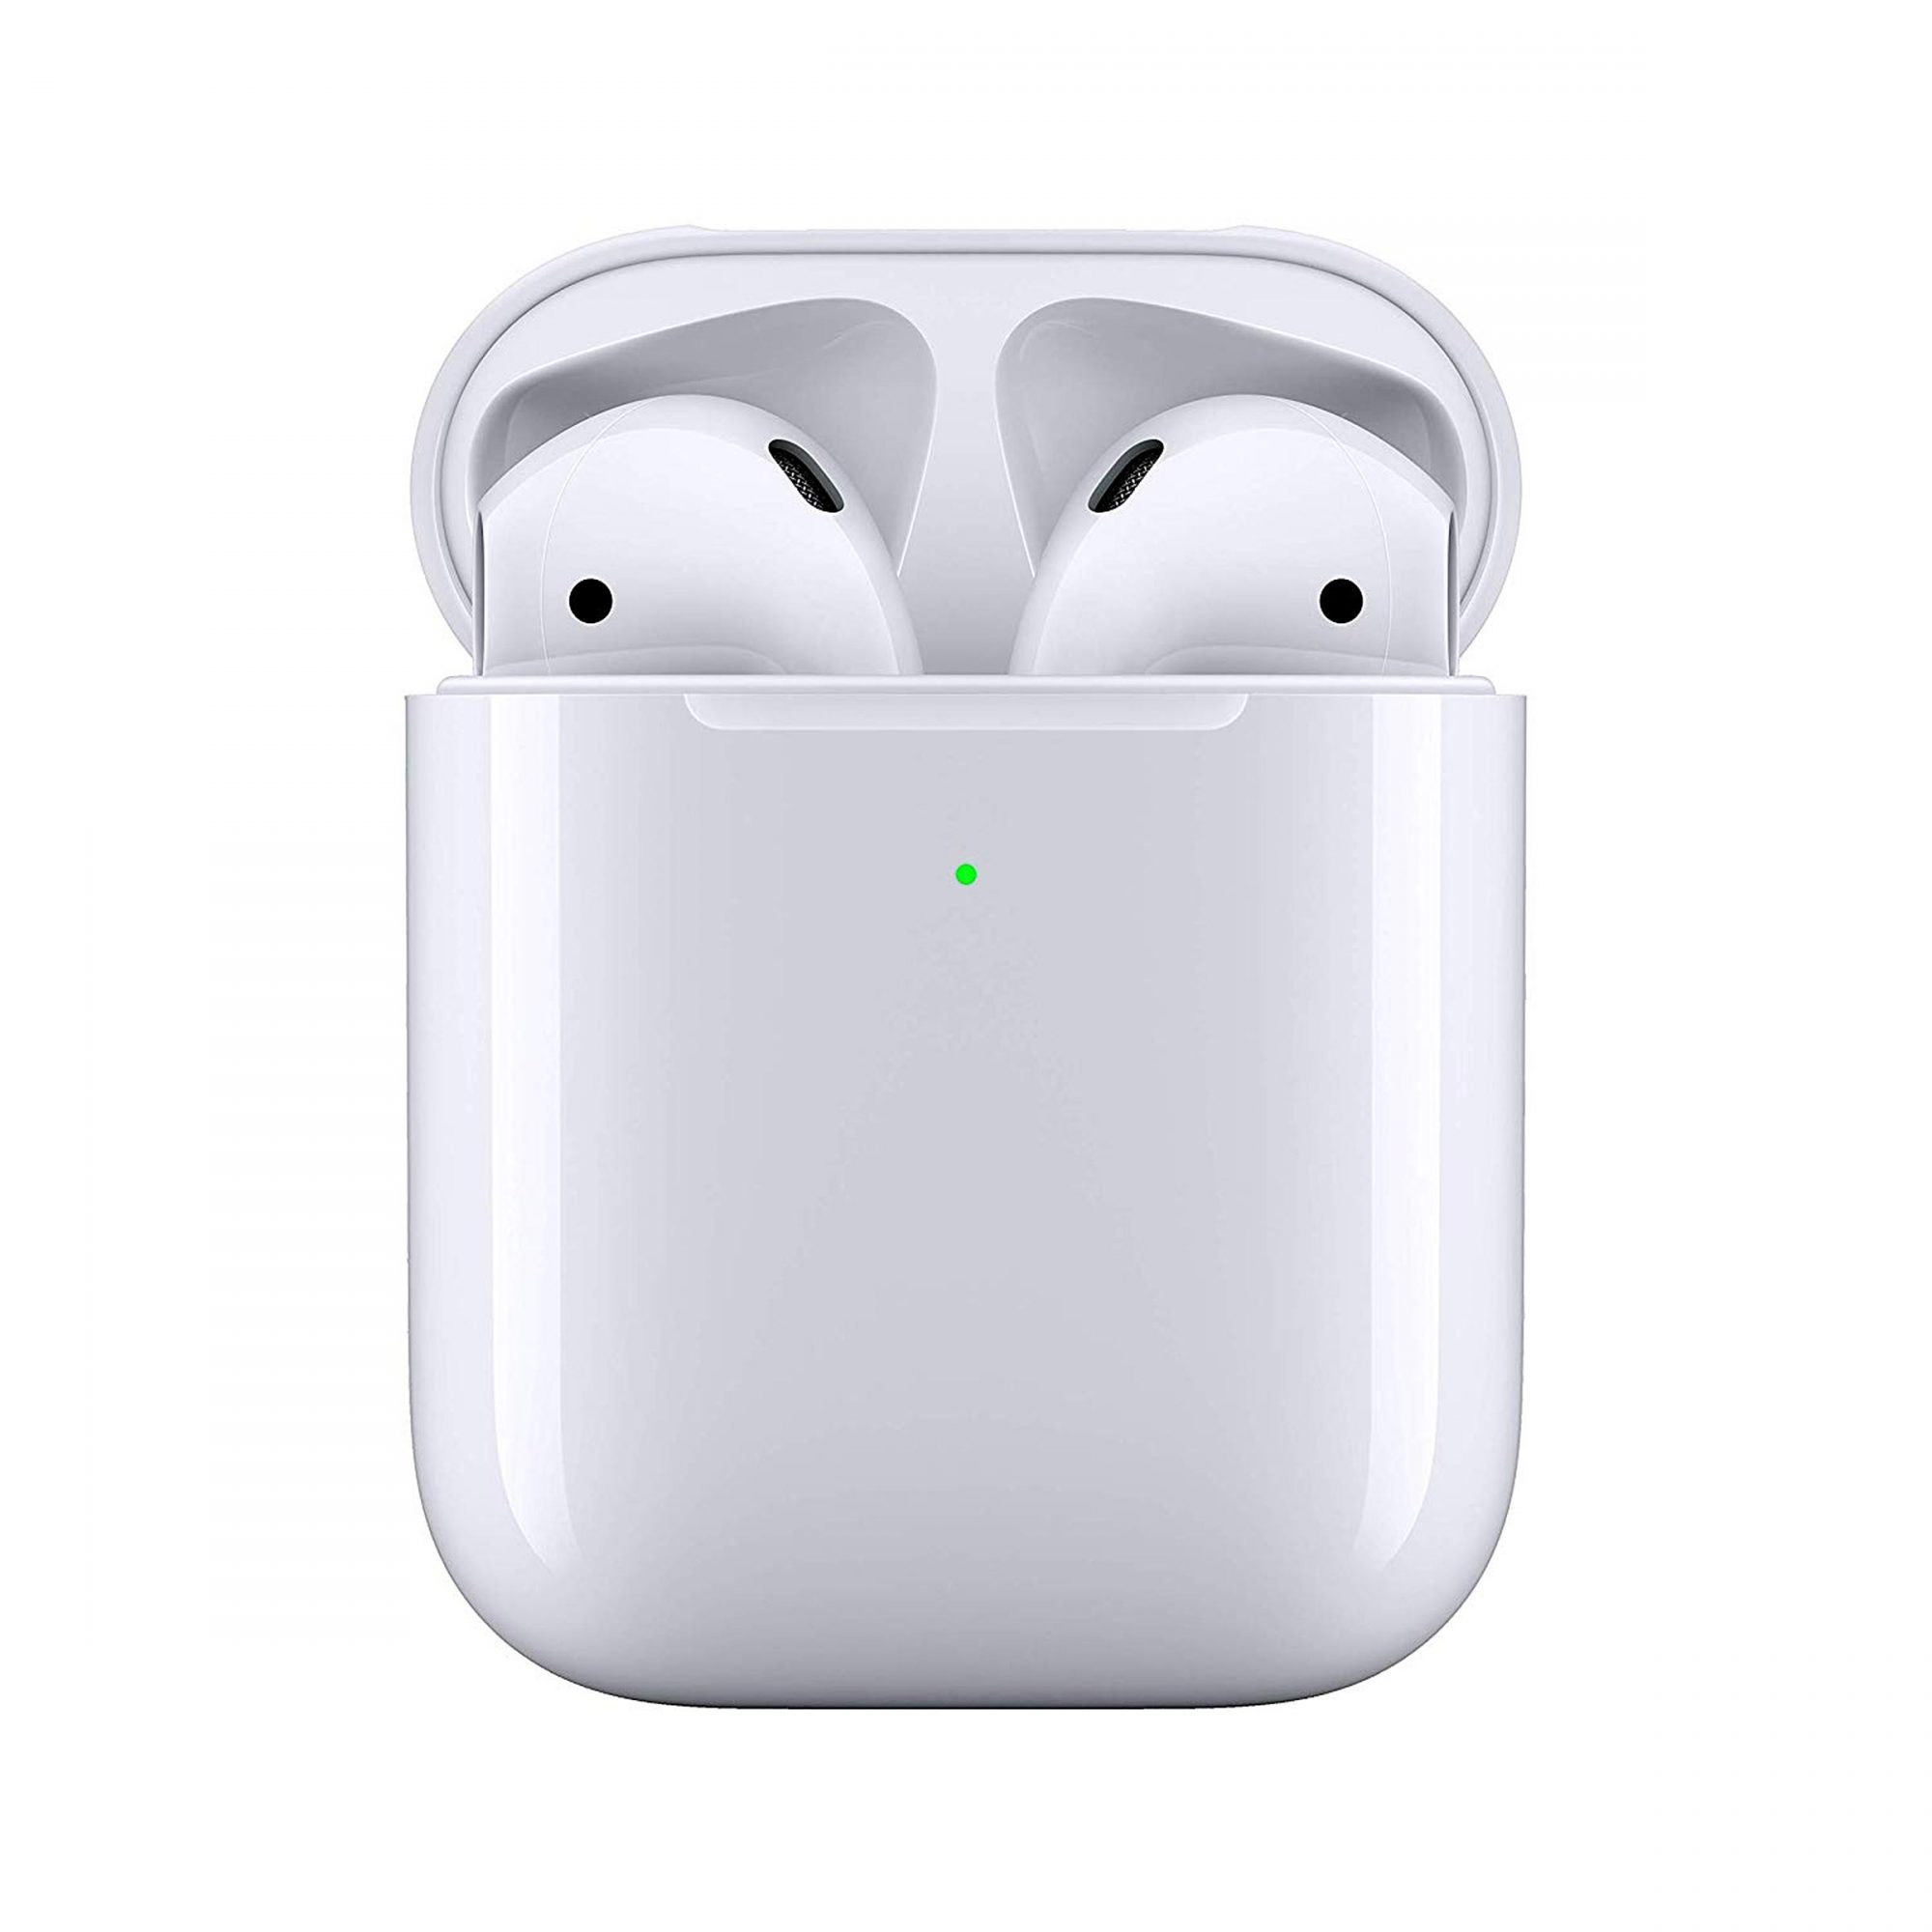 Apple Airpods Are At Their Best Prices Ever On Amazon People Com